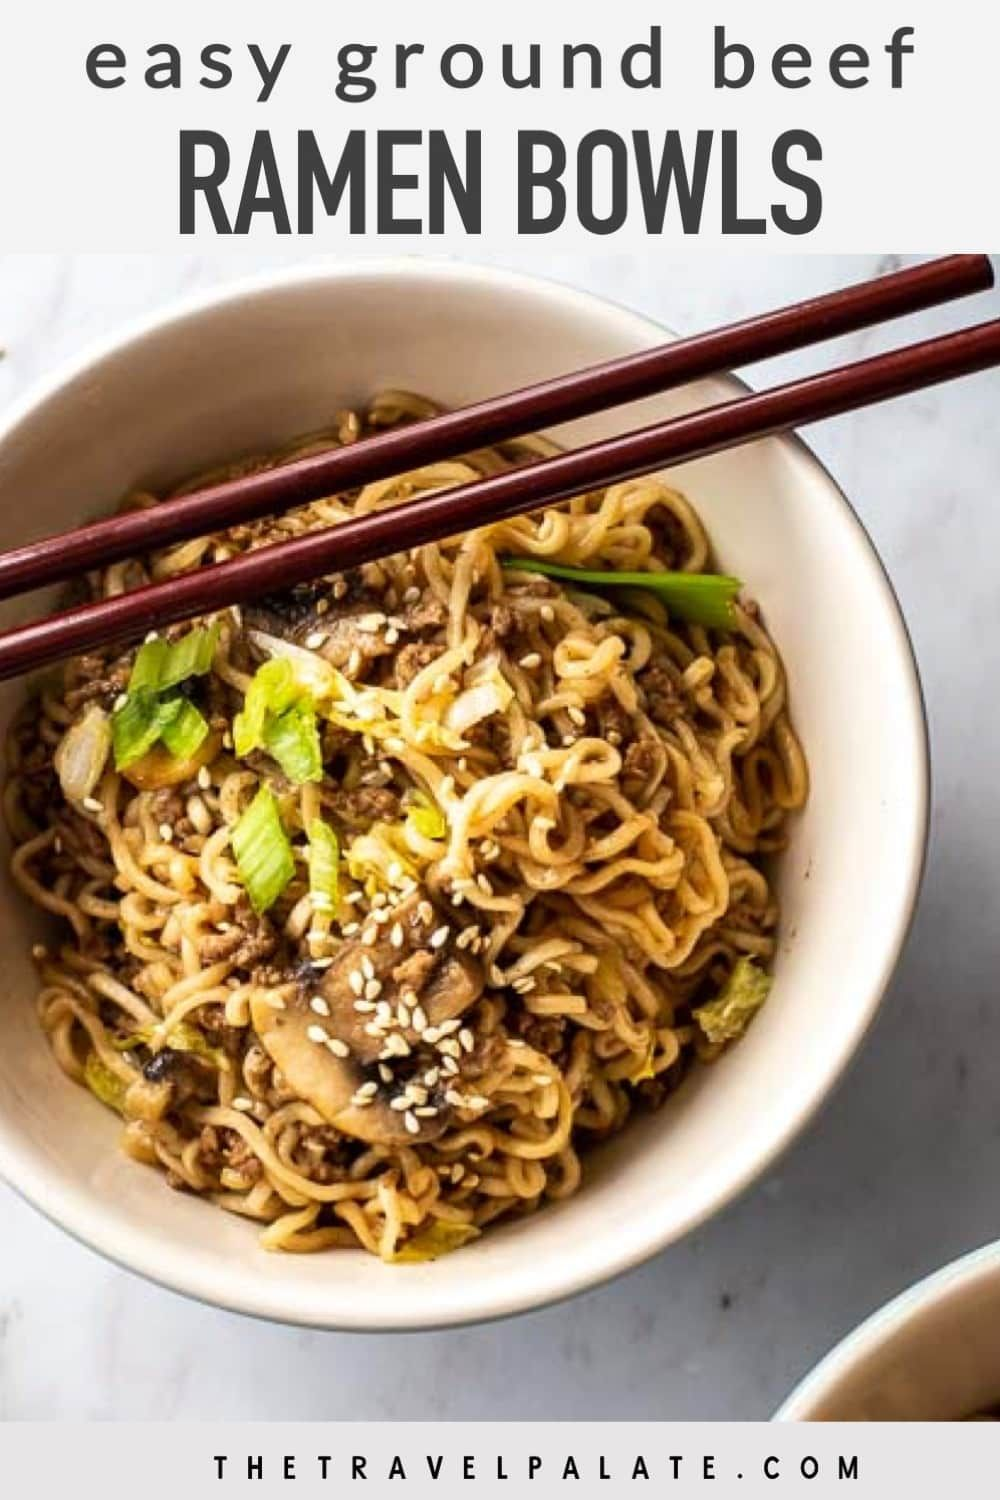 Ramen Noodles With Beef Is A Quick And Easy Dinner Recipe Full Of Asian Flavor Made With Packaged Ramen Noodles Gr Recipes Easy Dinner Recipes Dinner Recipes